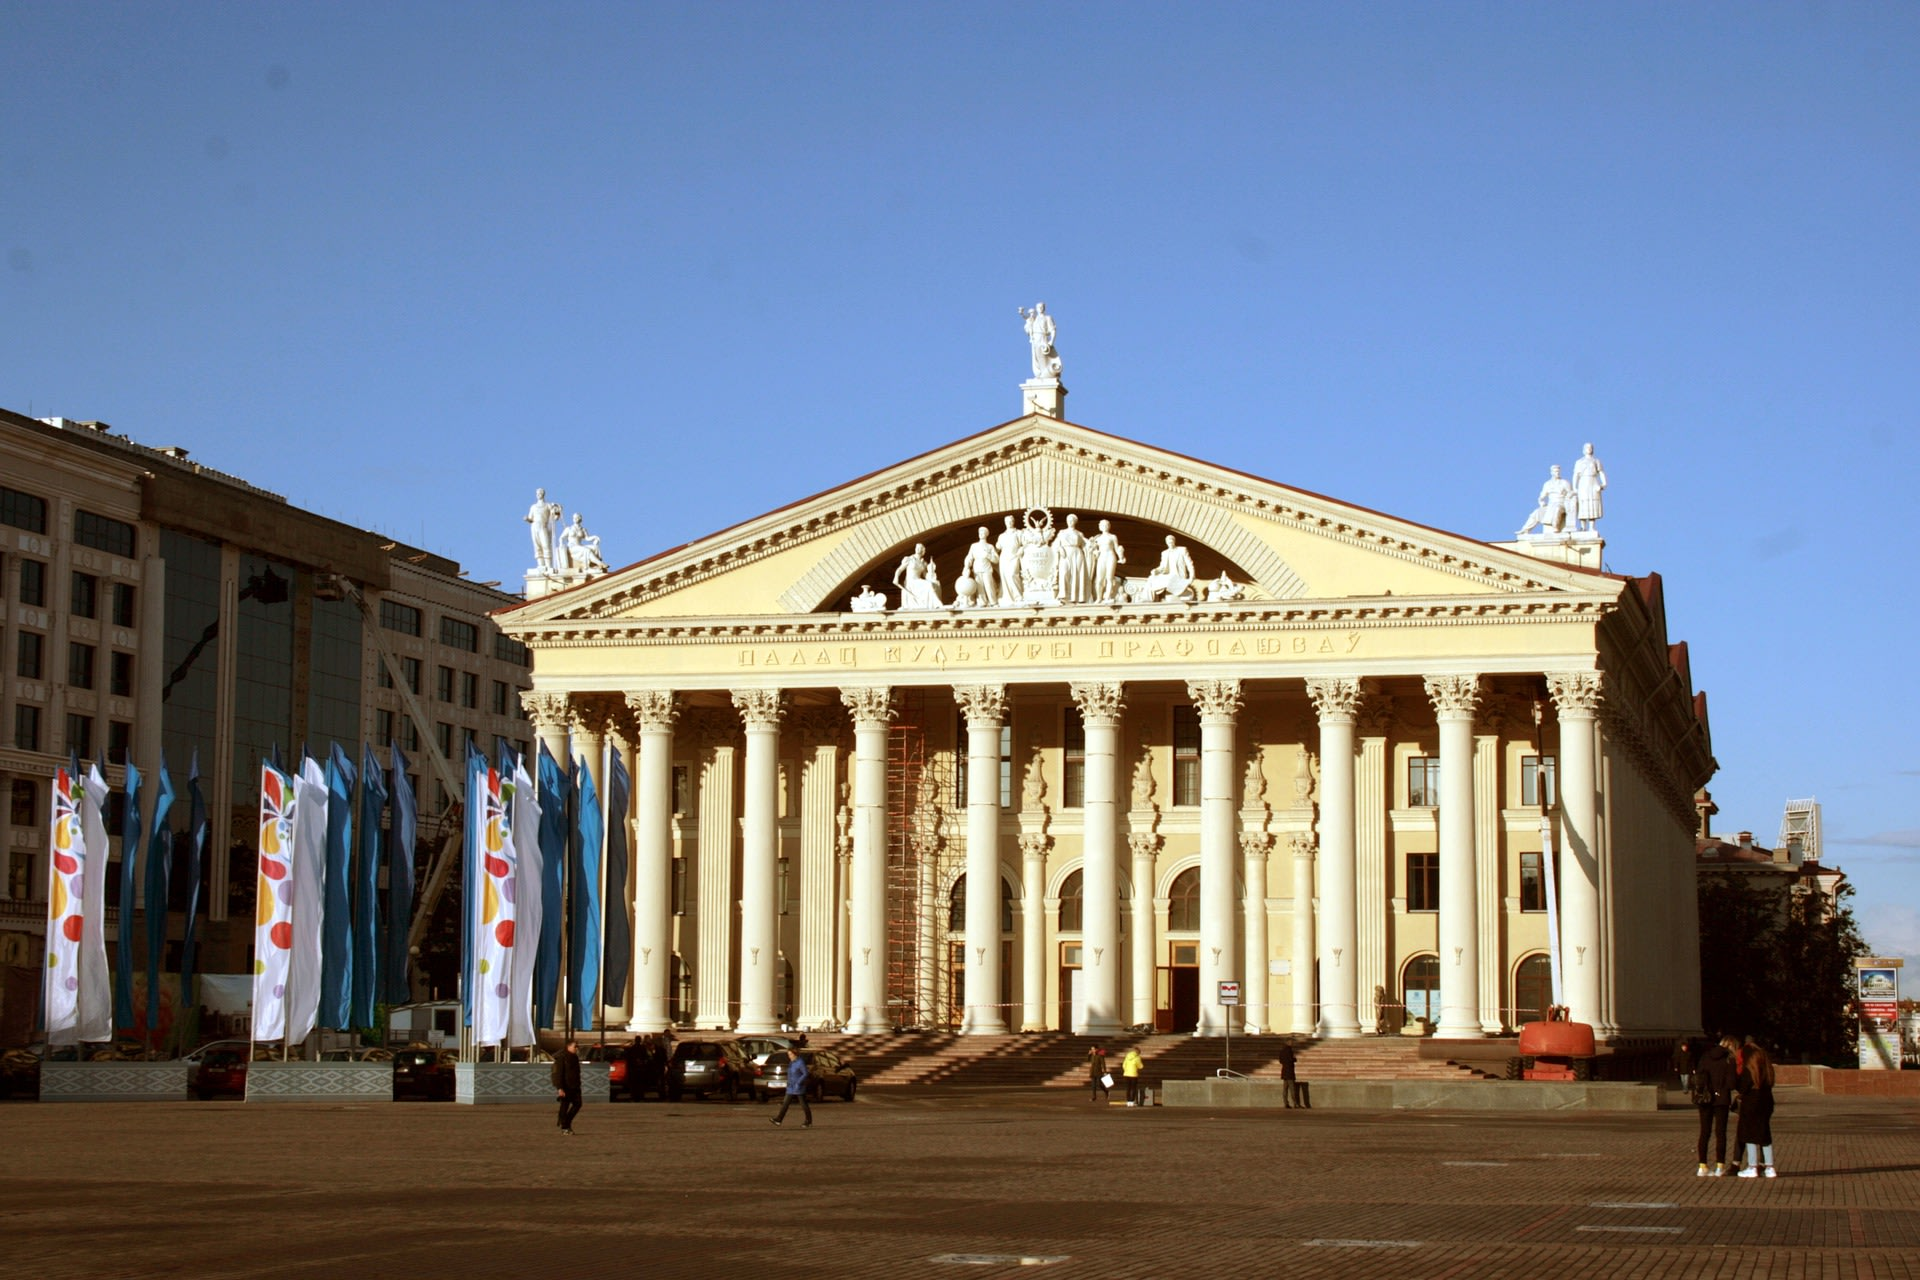 Make your way to the Major Monuments of Minsk